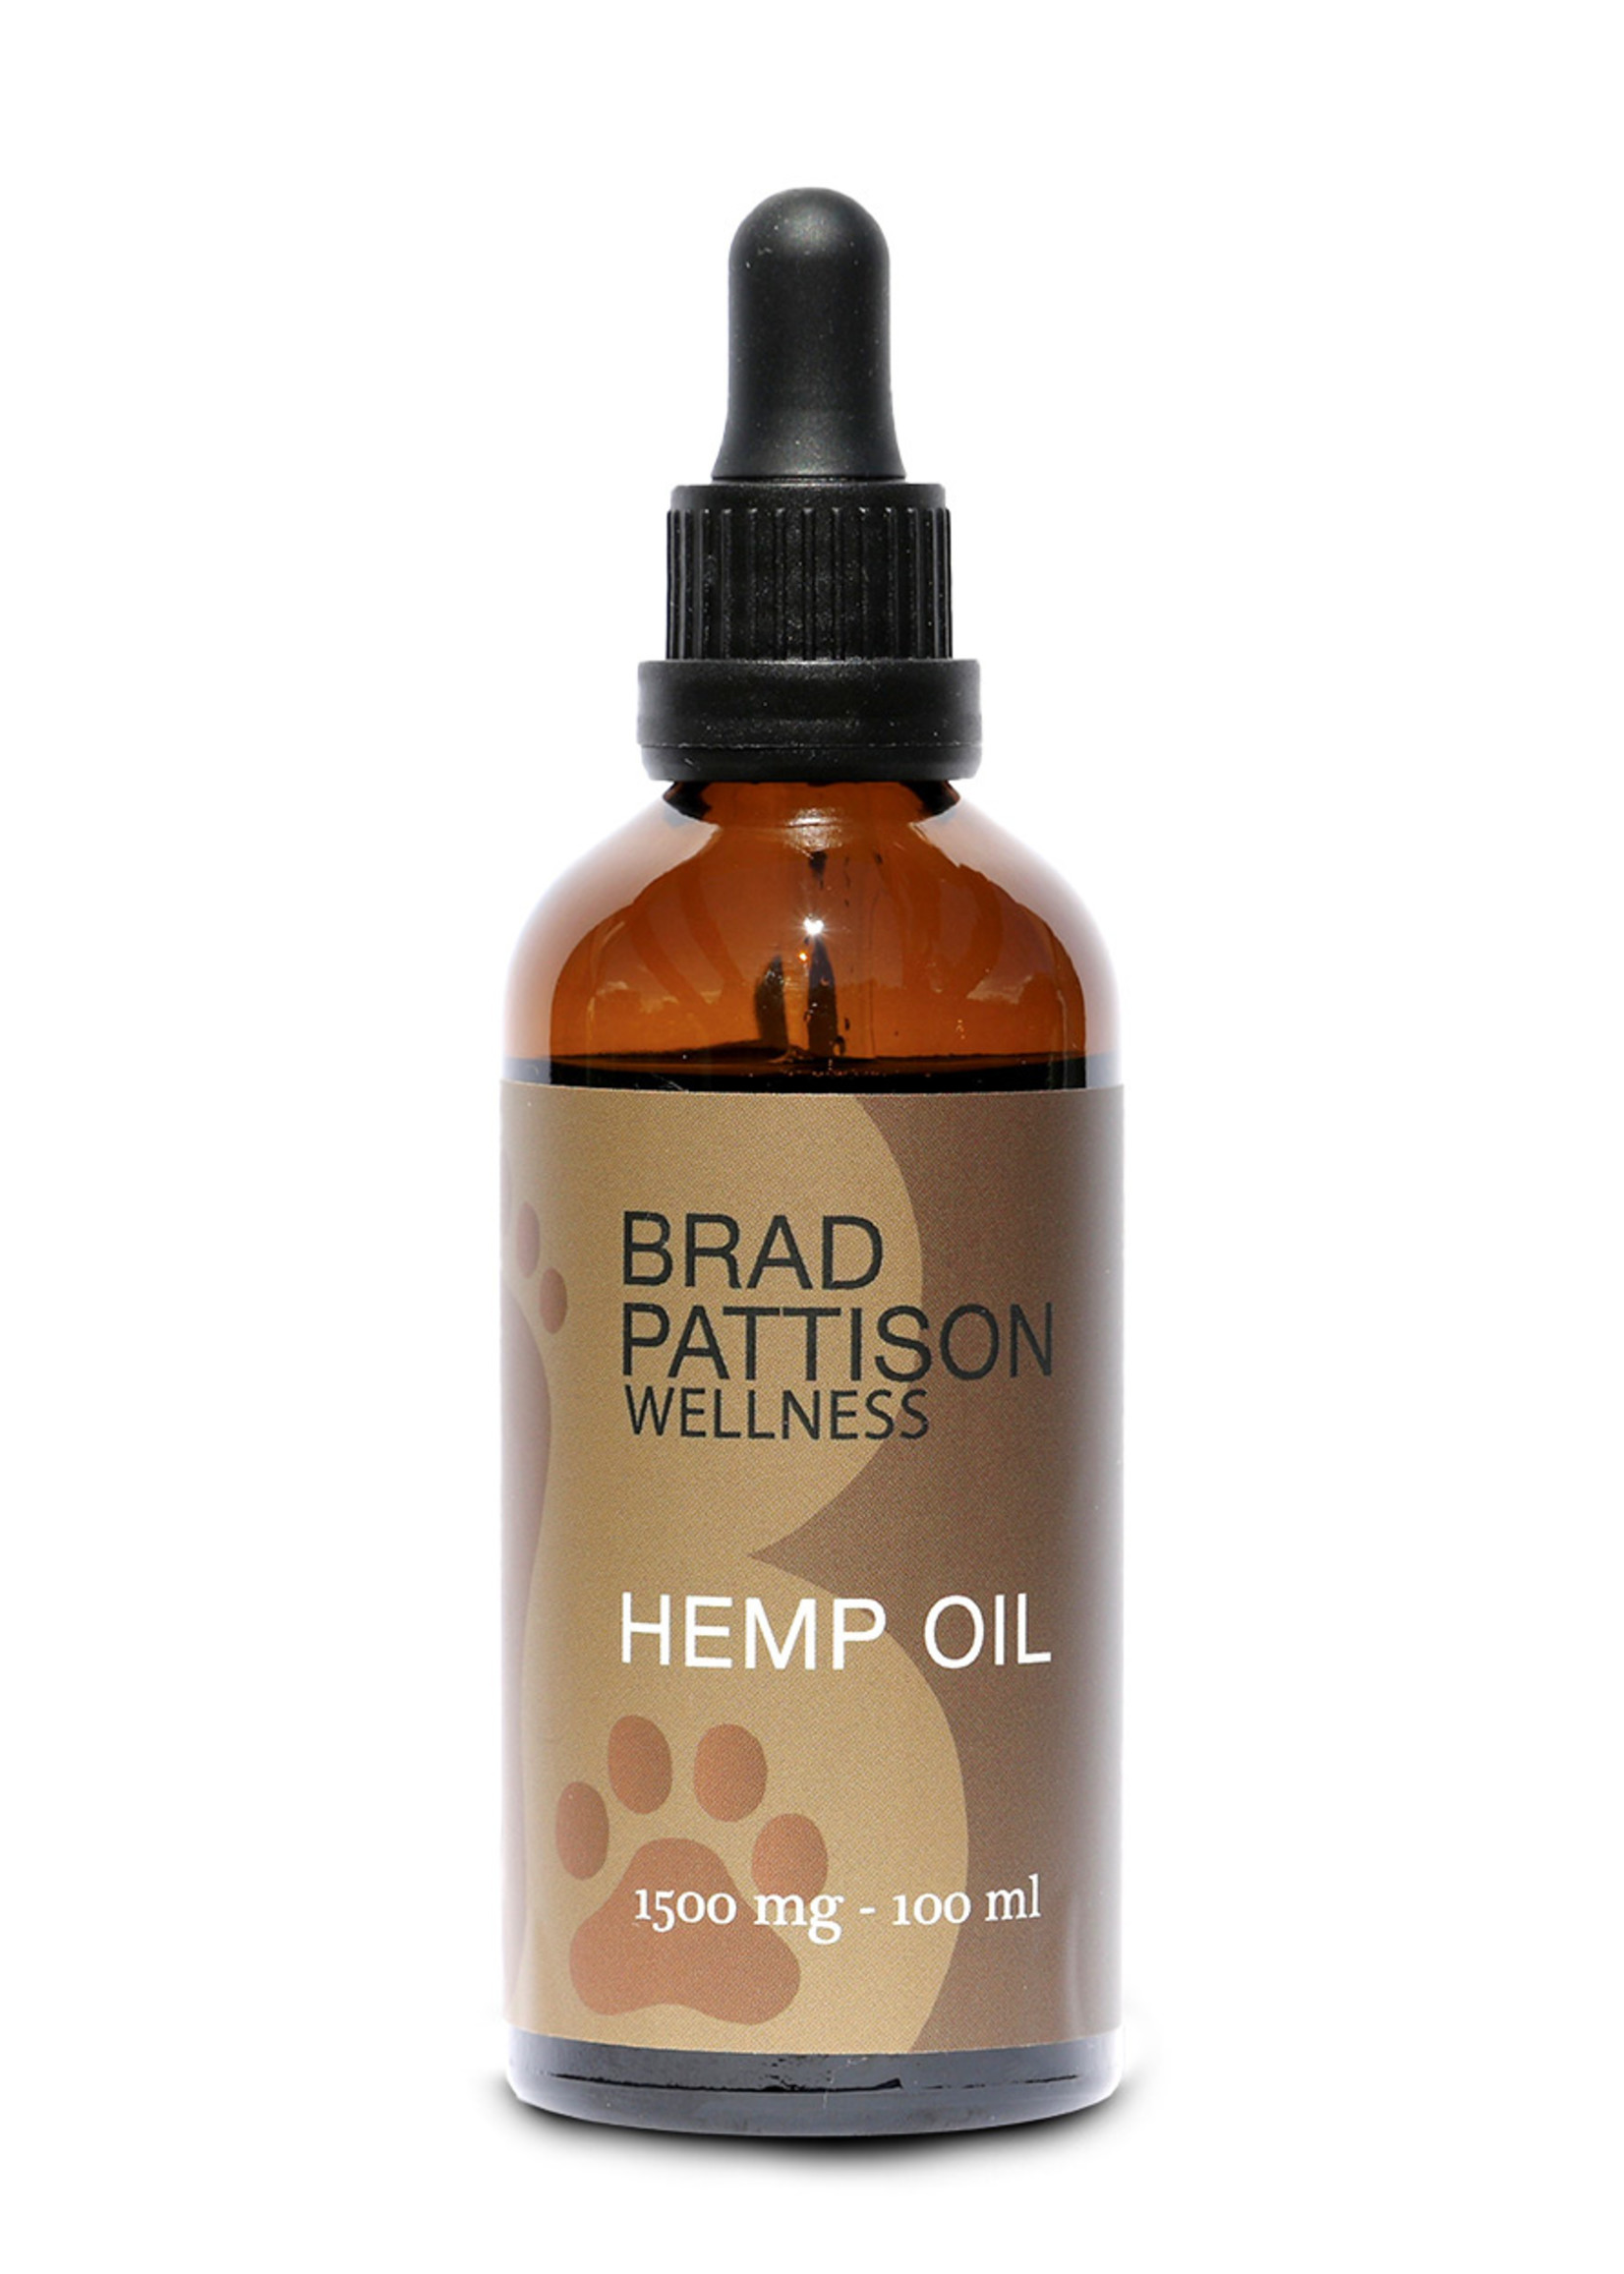 Brad Pattison Wellness Brad Pattison Wellness Hemp Oil for Pets 1500mg/100mL